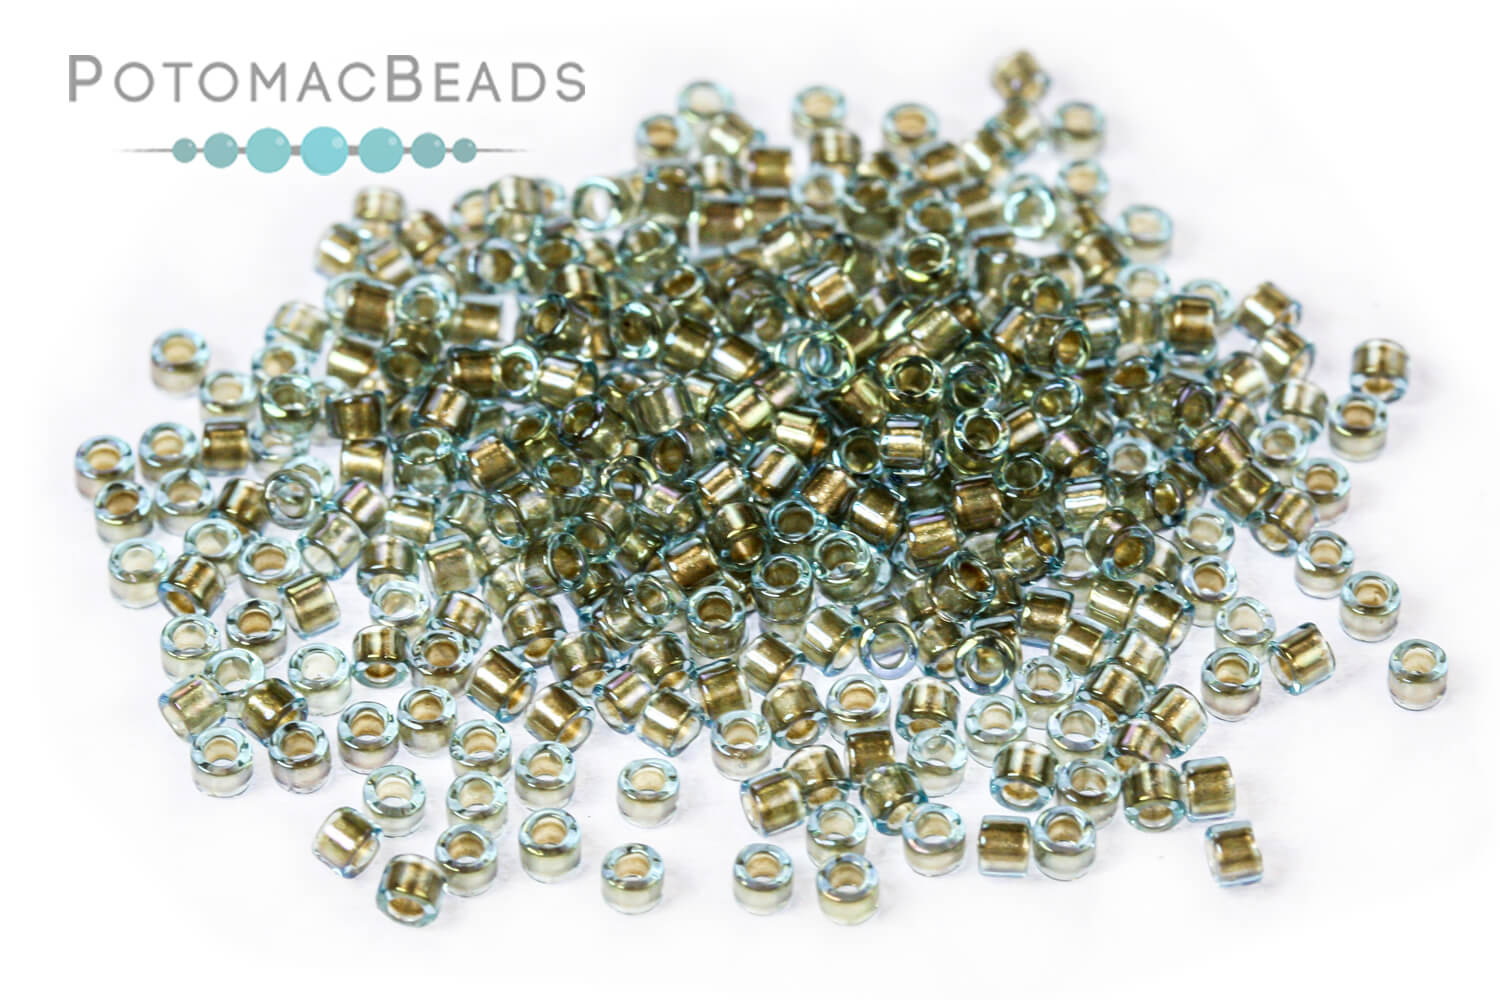 Seed Beads / Miyuki Delicas Beads / Delica Beads Size 11/0 - Fancy-Lined Colors